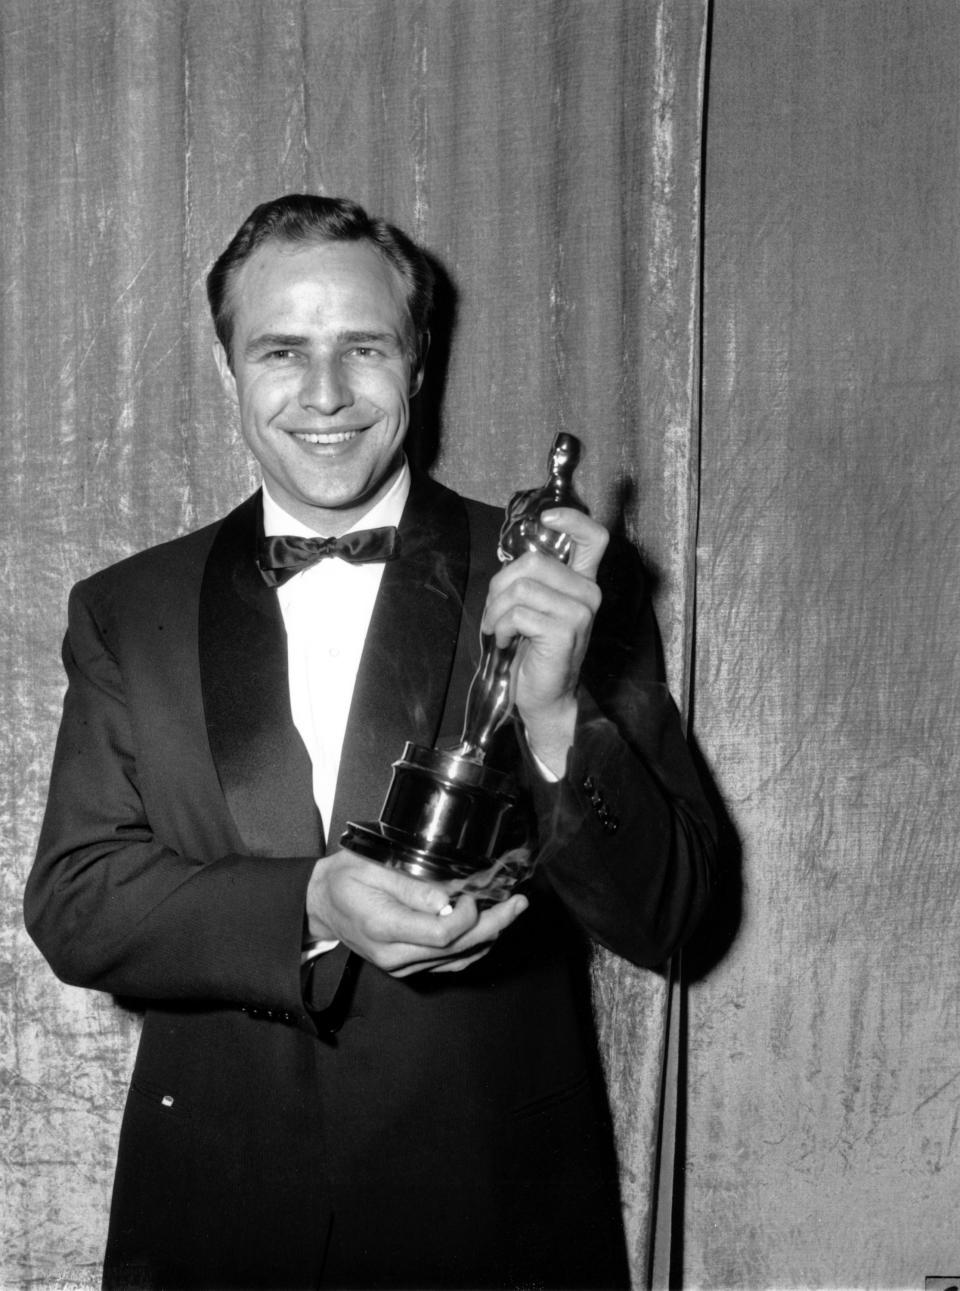 """Oscar-winner Marlon Brando poses with his statuette at the 27th Annual Academy Awards at Pantages Theater in Hollywood, Ca. on March 30, 1955.  Brando won best actor of the year for his portrayal in """"On the Waterfront.""""  (AP Photo)"""